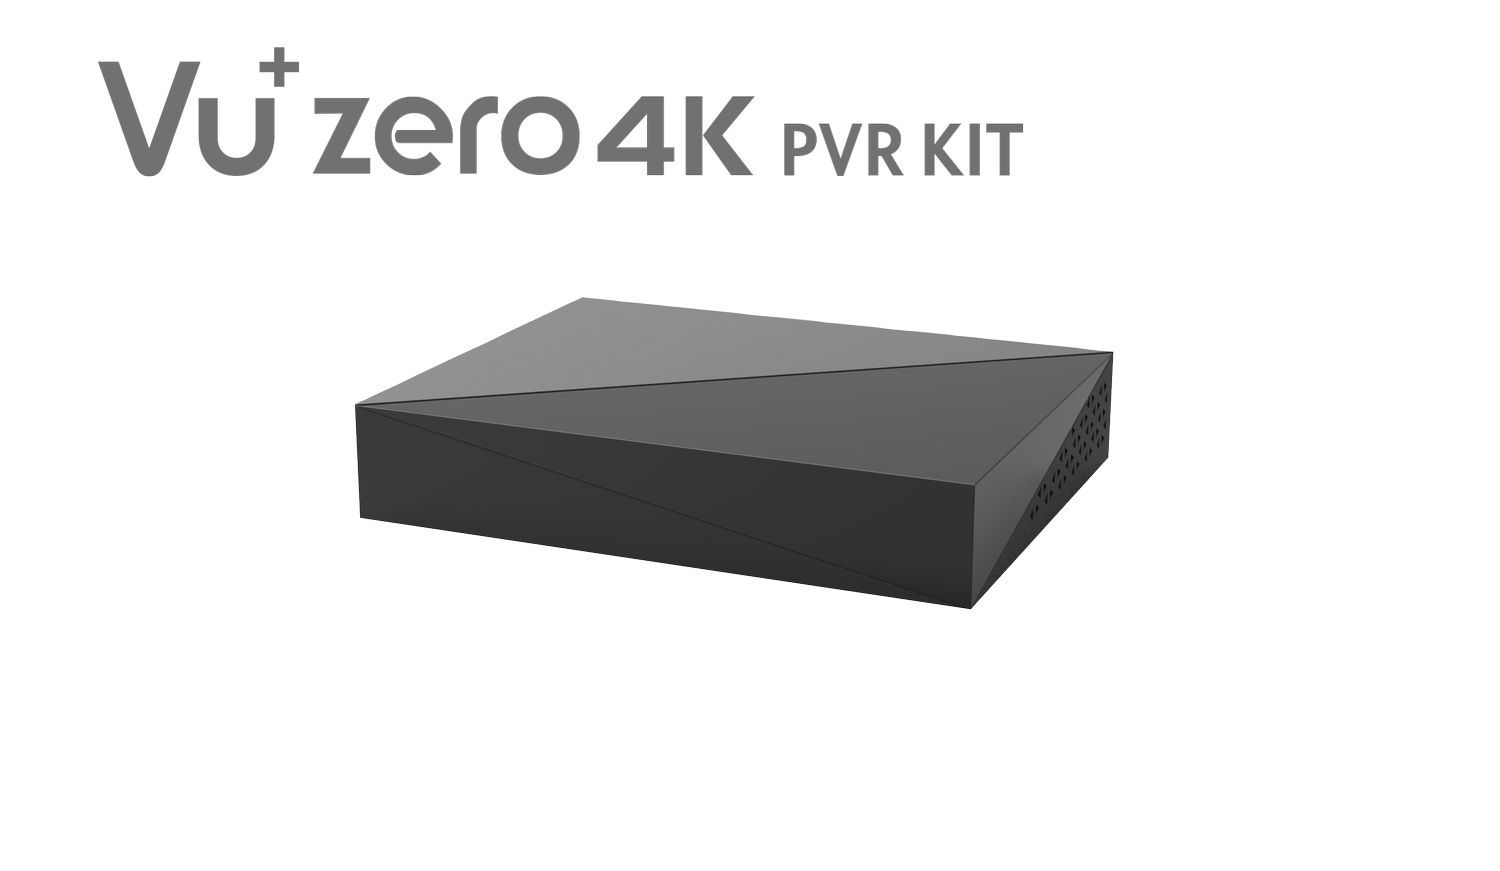 VU+Zero 4K PVR Kit incl. 500GB HDD